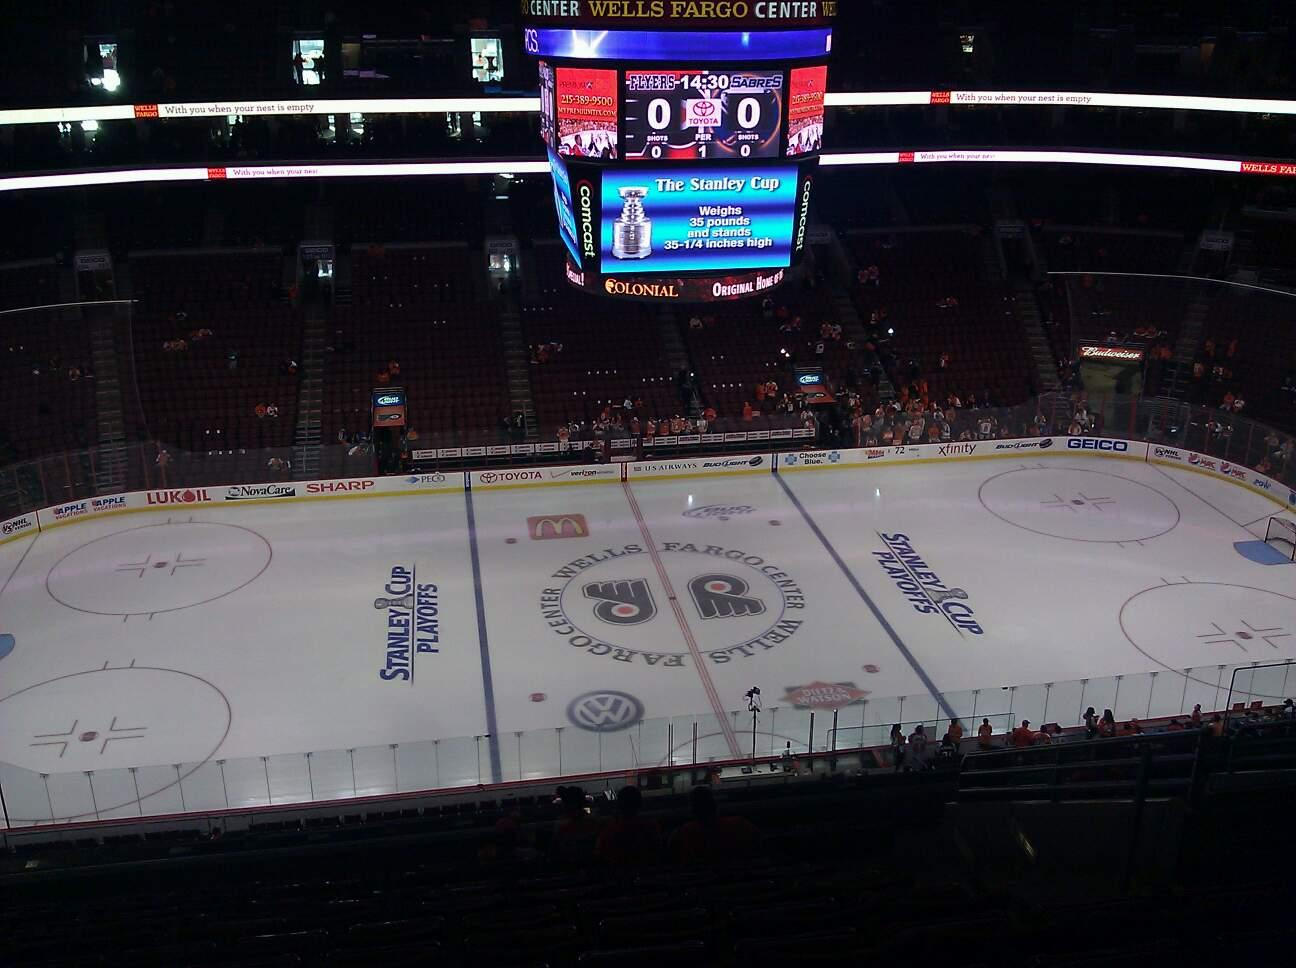 View from Section 212 at Wells Fargo Center